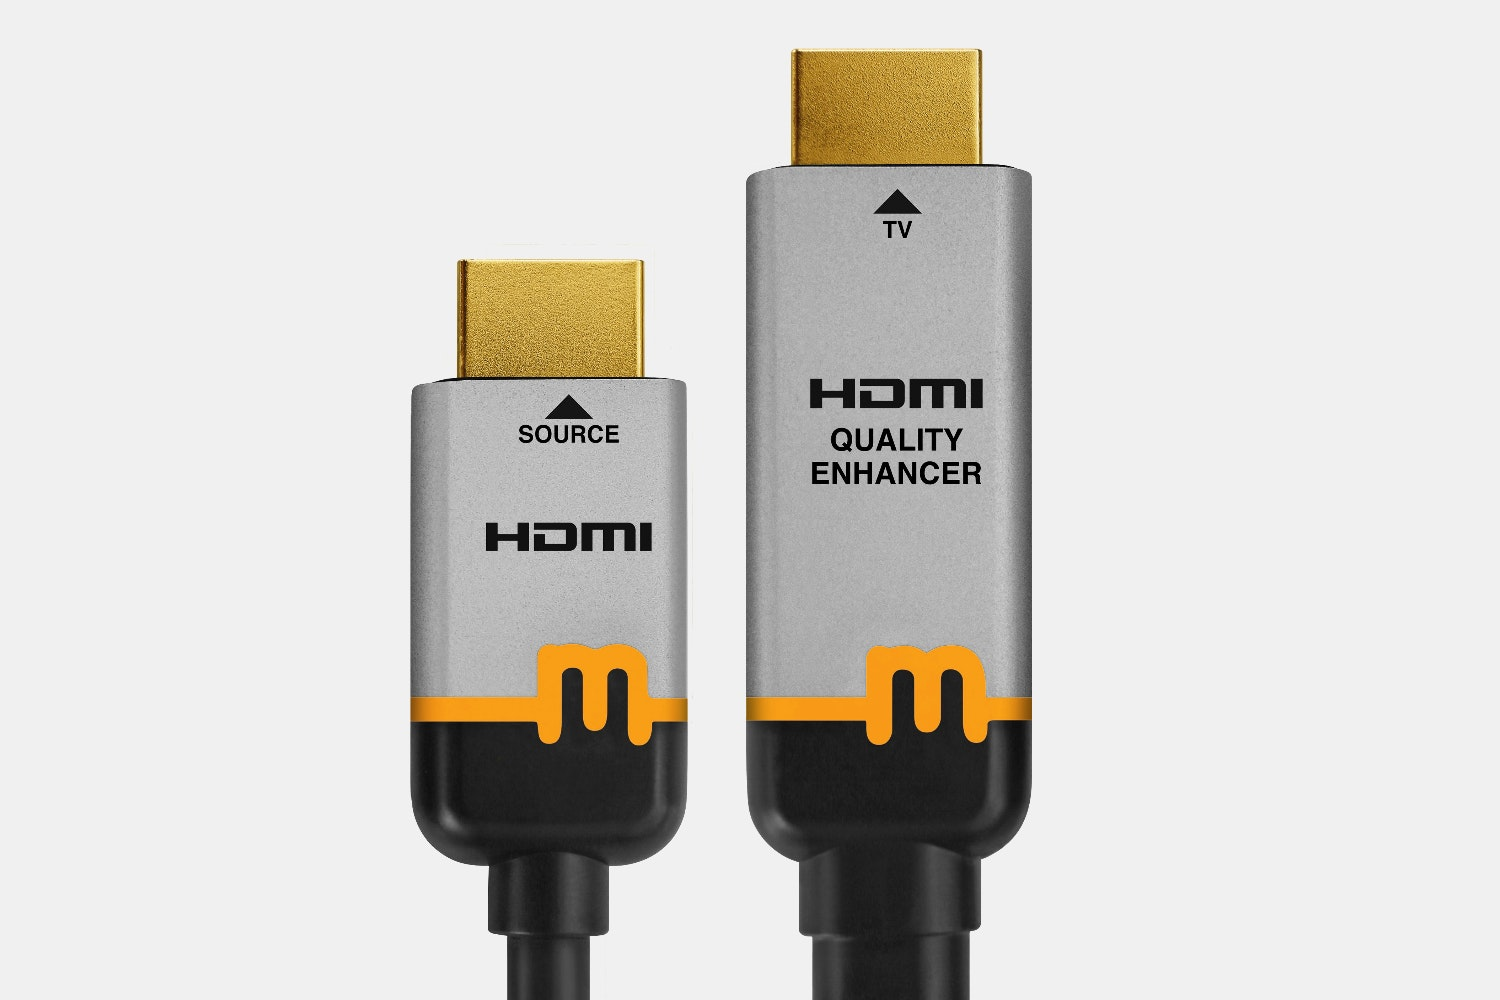 mCable Upscaling HDMI Cable With 4K UHD Processing